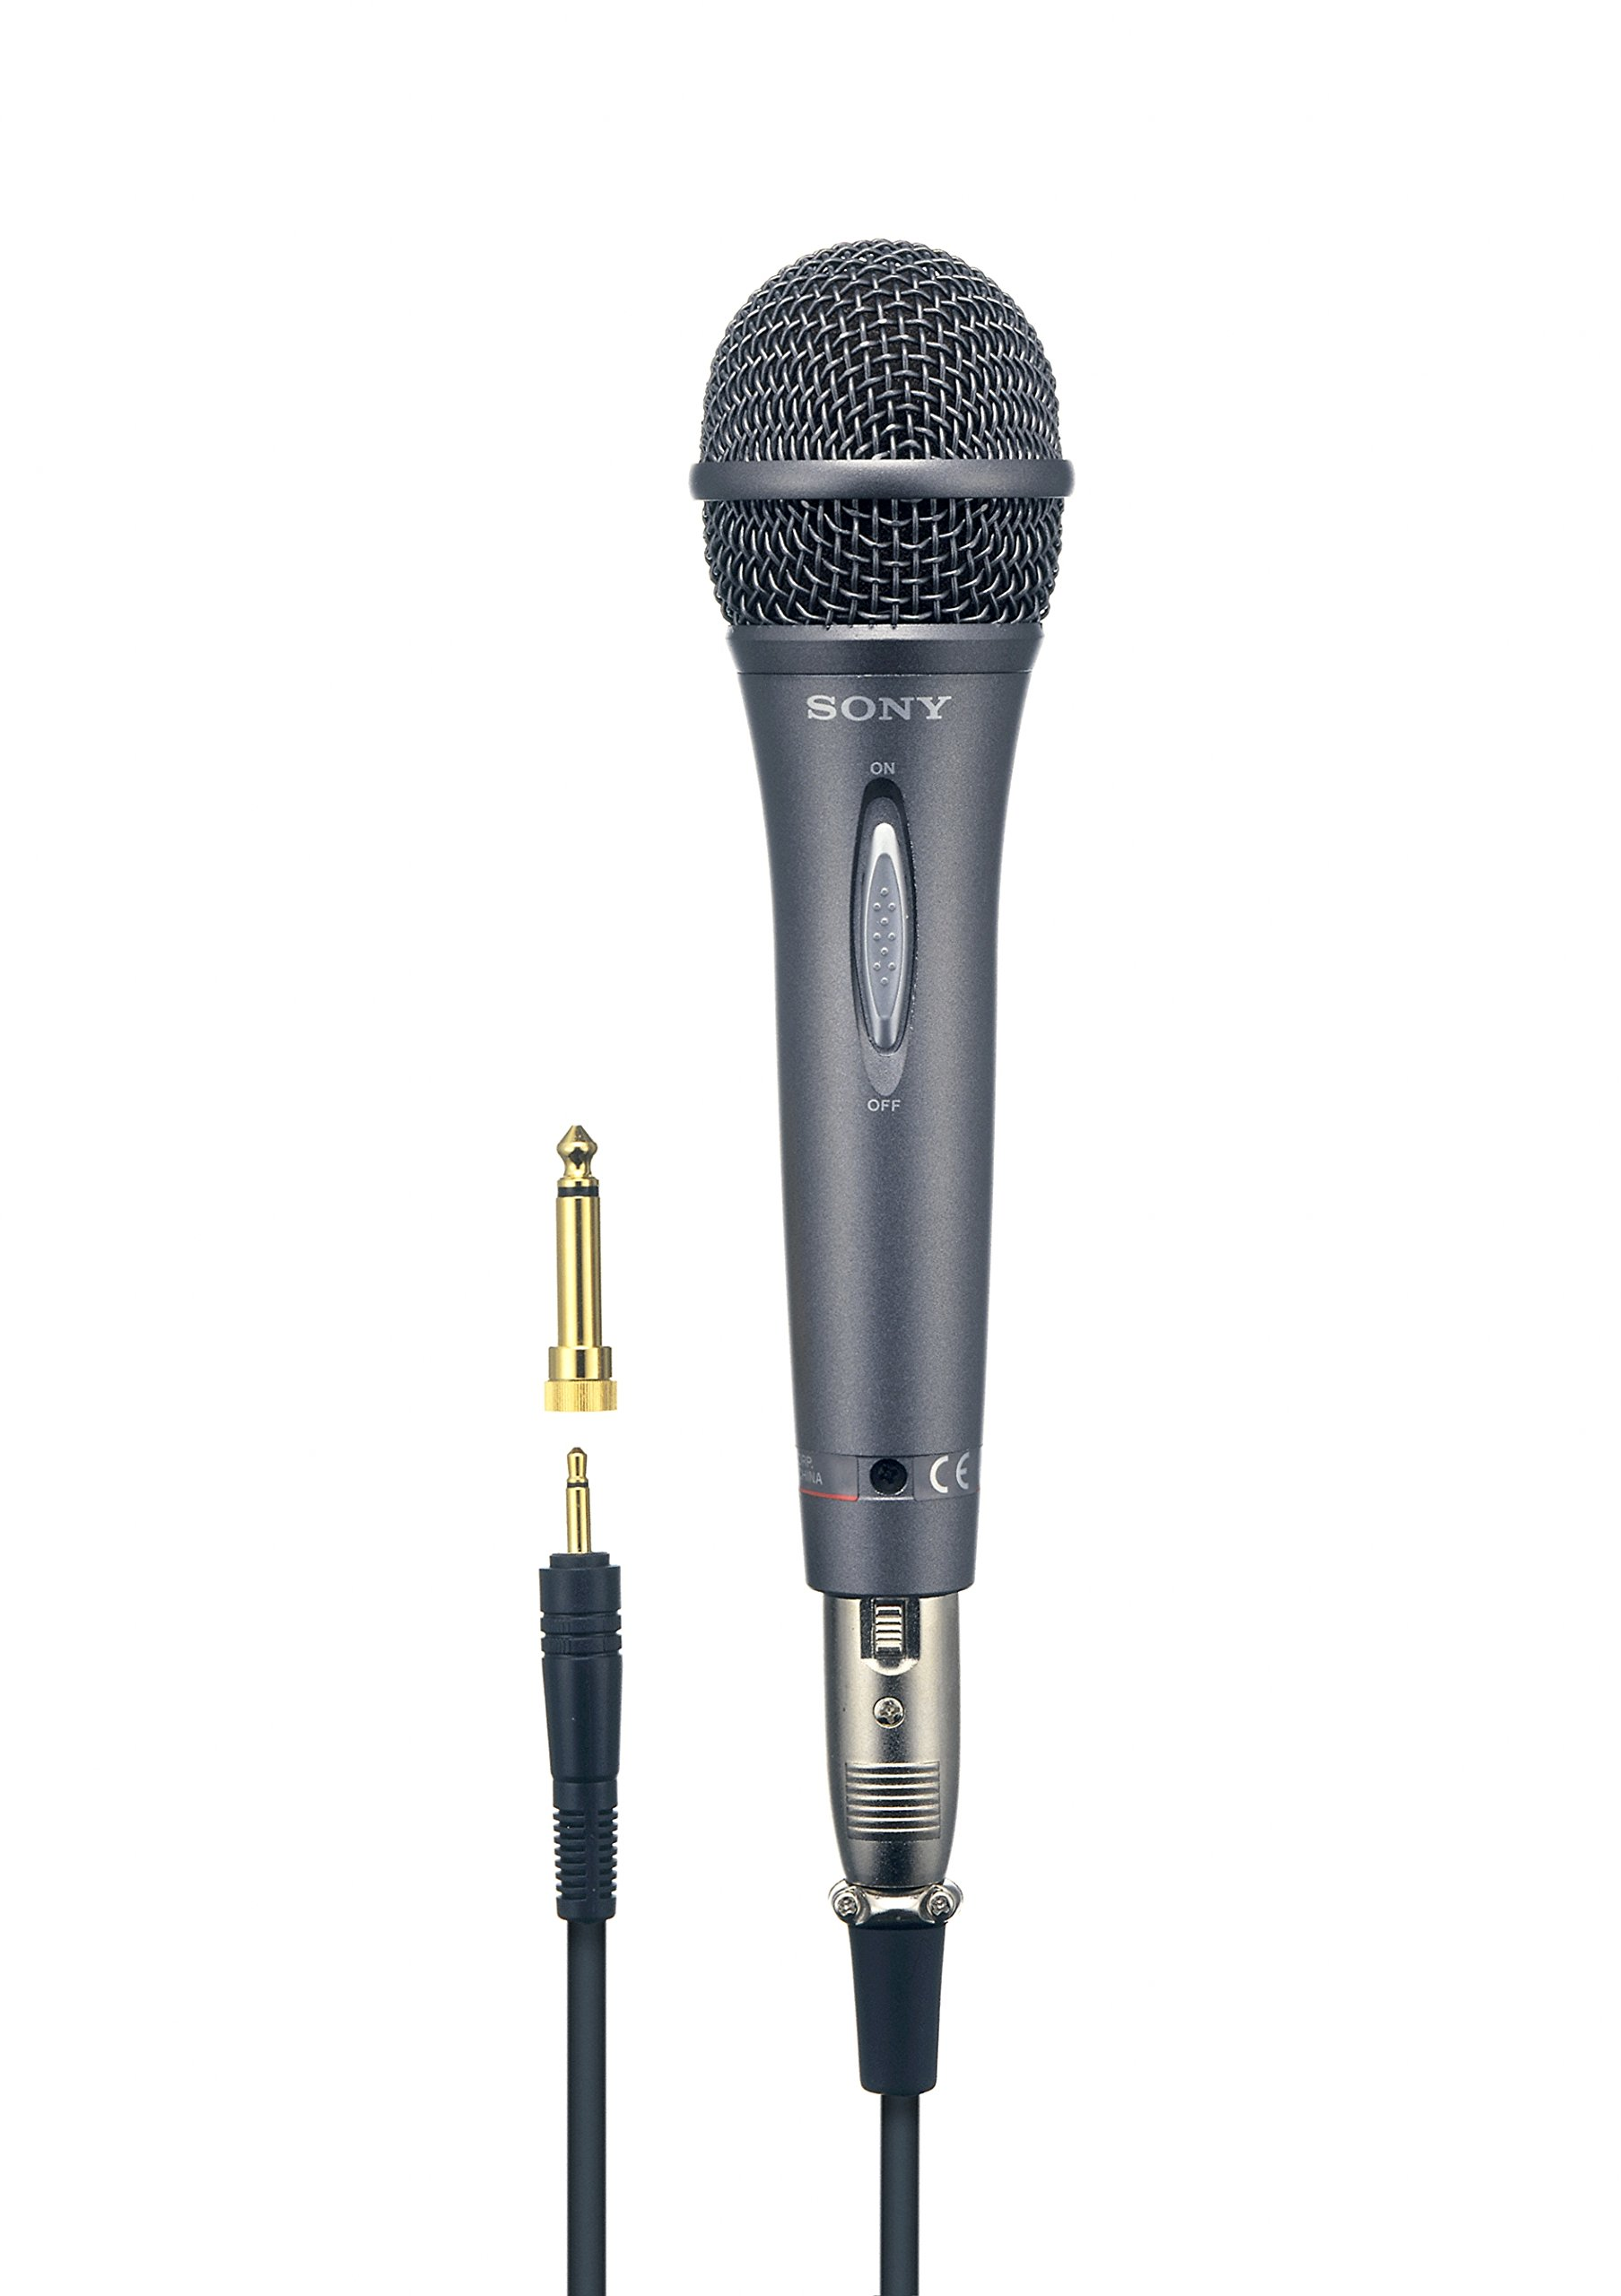 Sony F-V420 Uni-Directional Vocal Microphone with Gold-Plated Mini-Plug by Sony